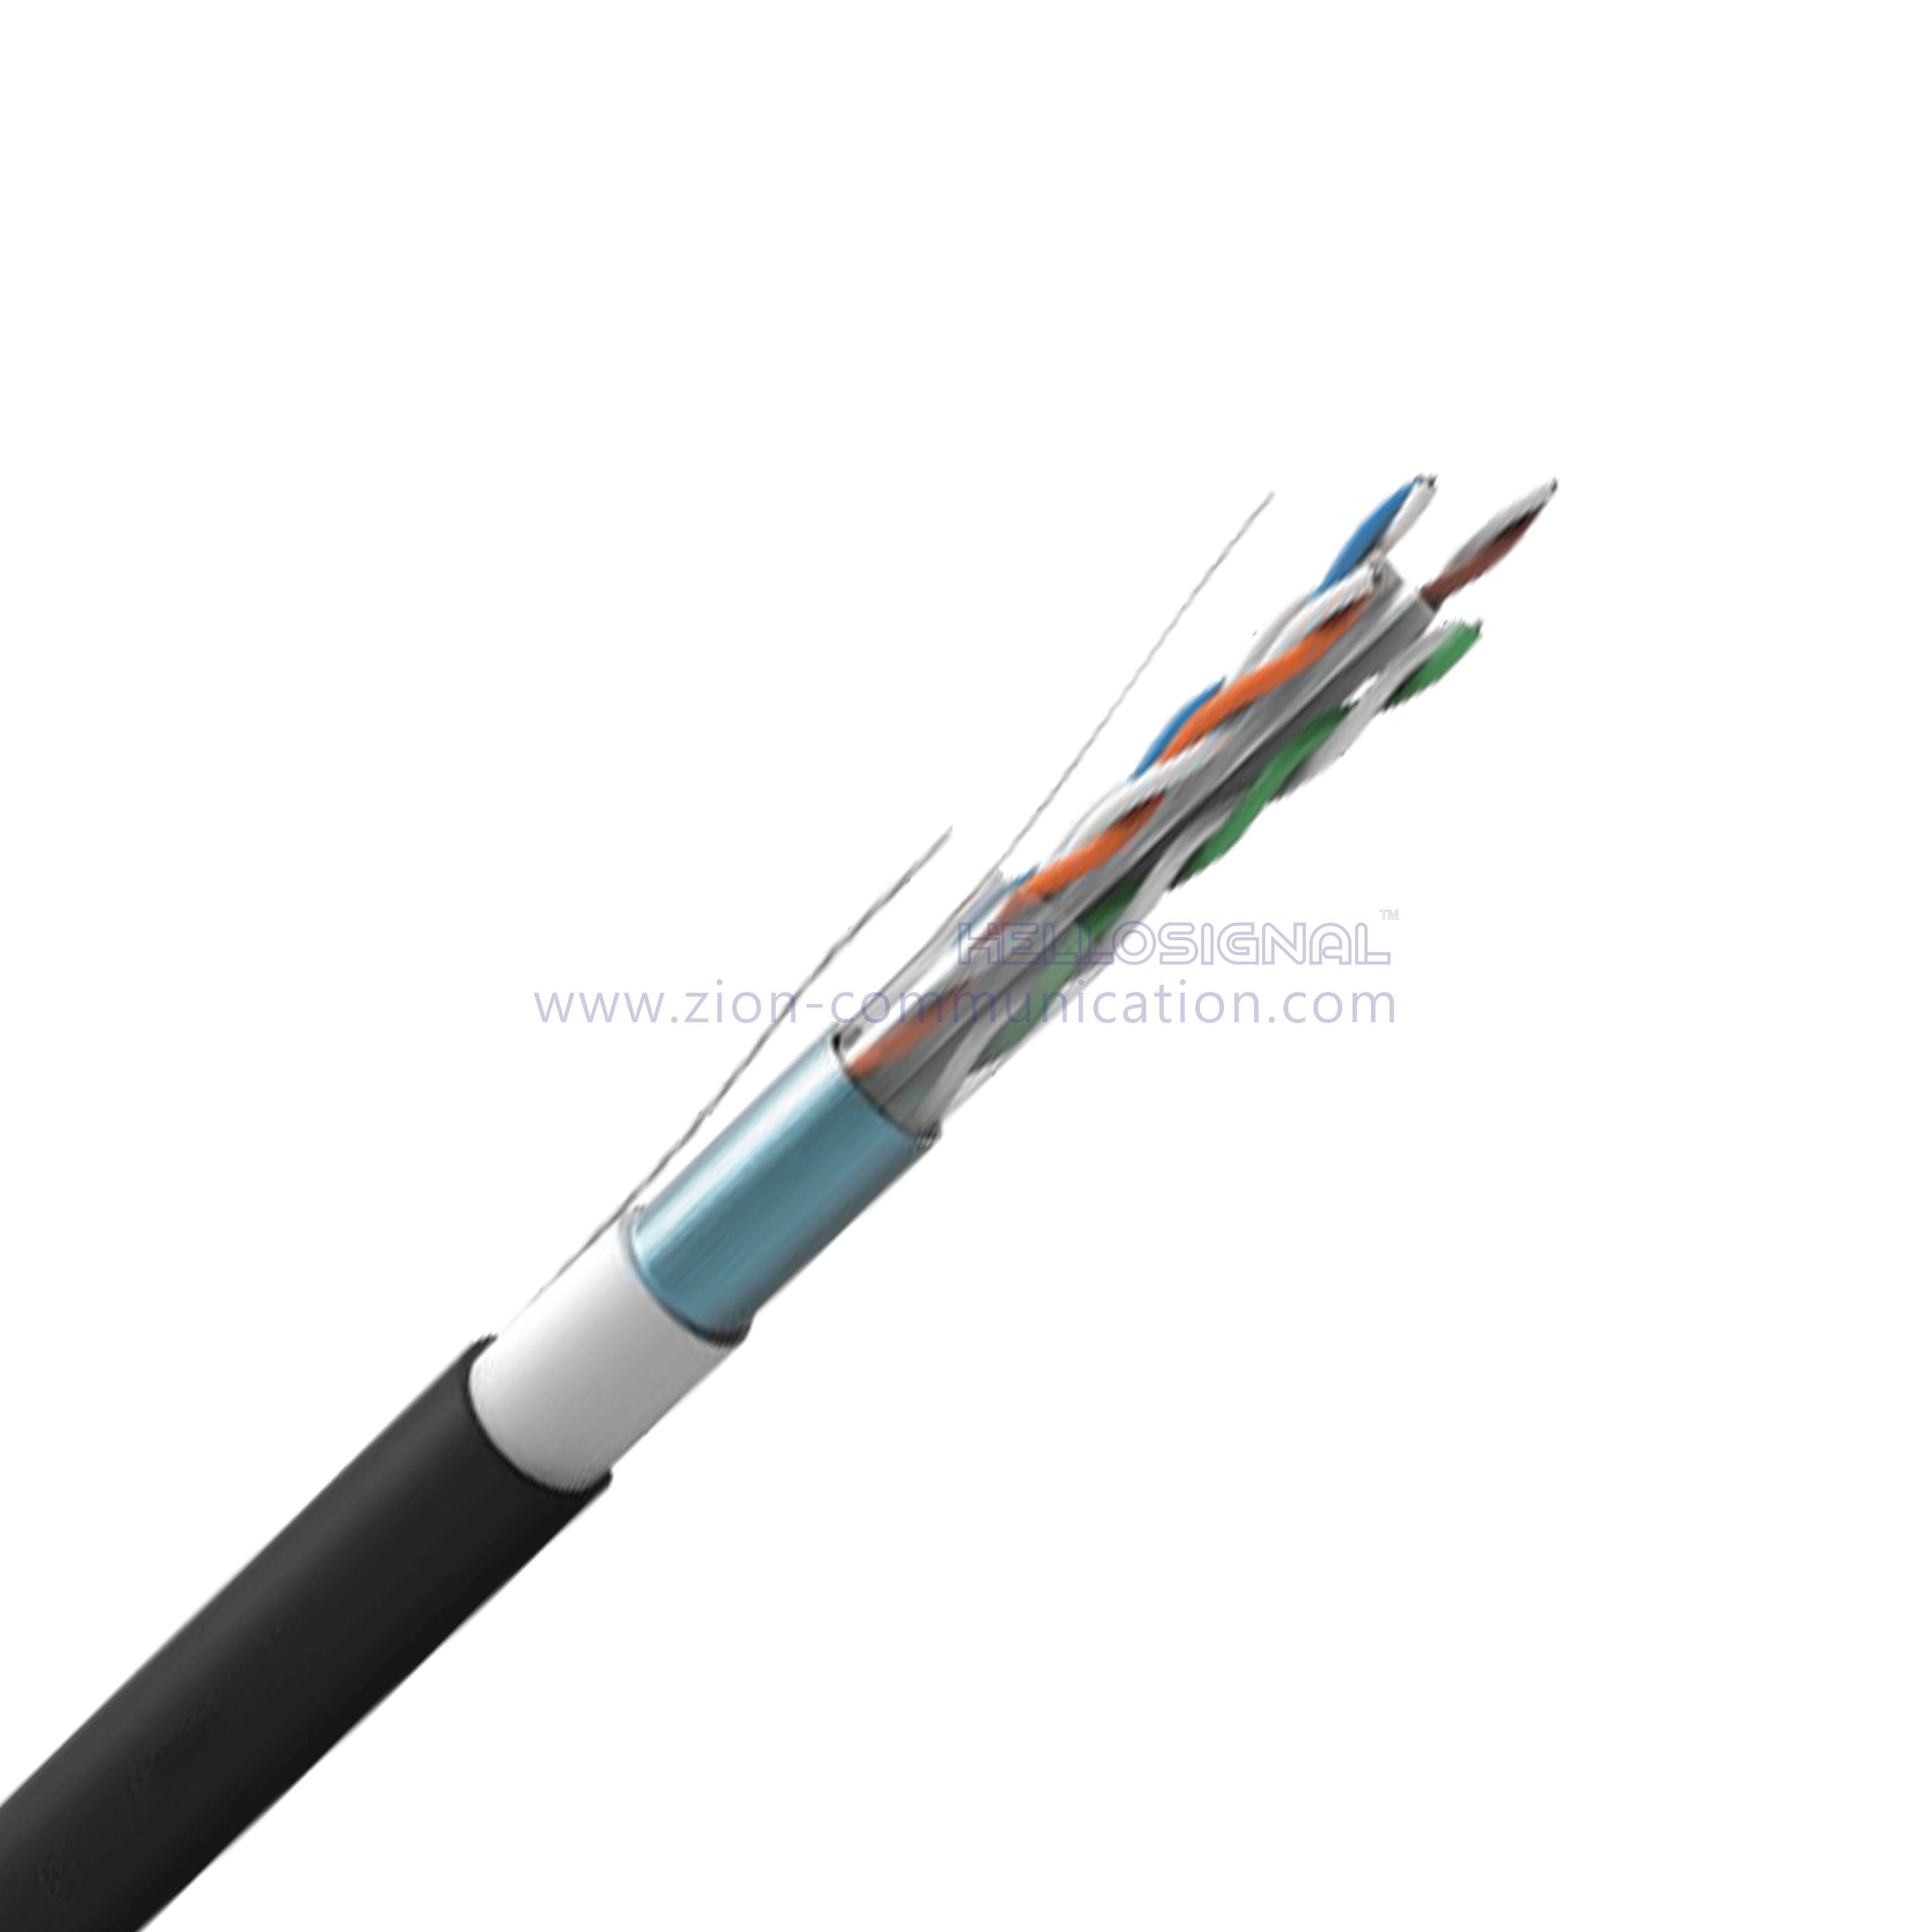 HELLOSIGNAL Industrial CAT6A Cable